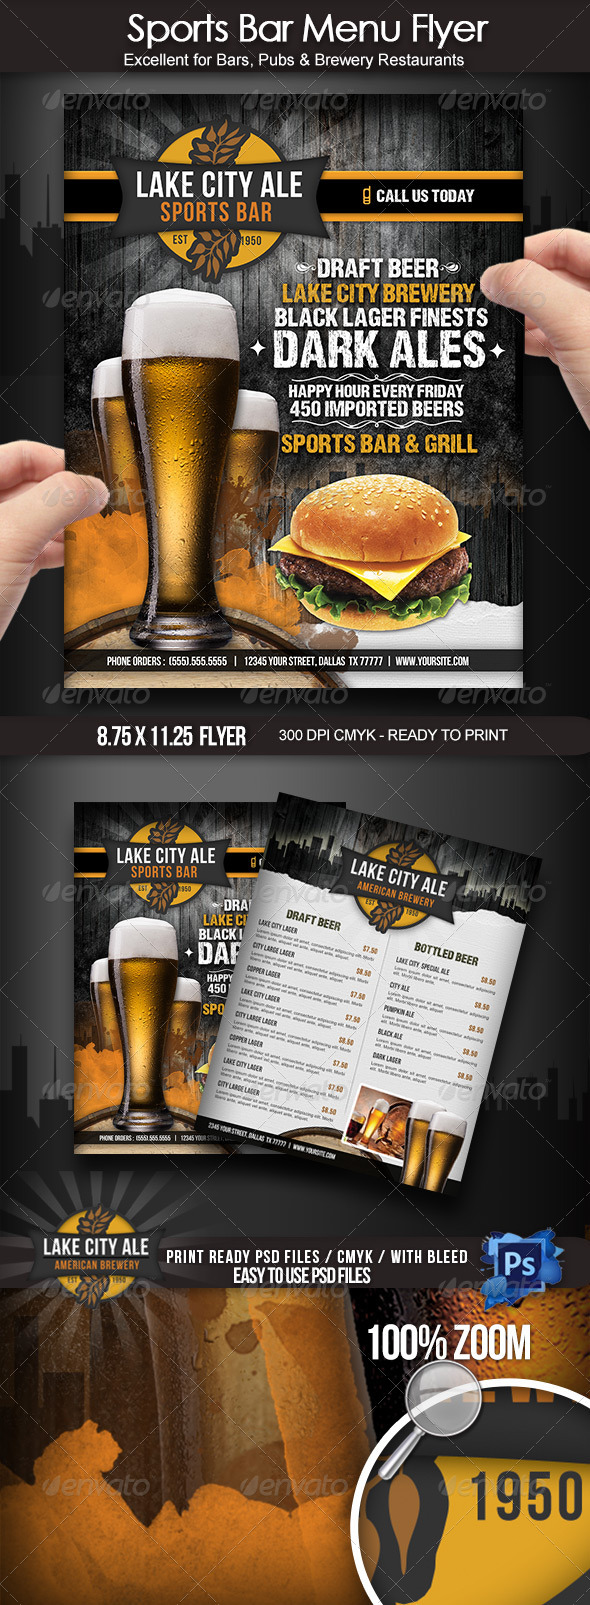 Sports Bar Menu Flyer